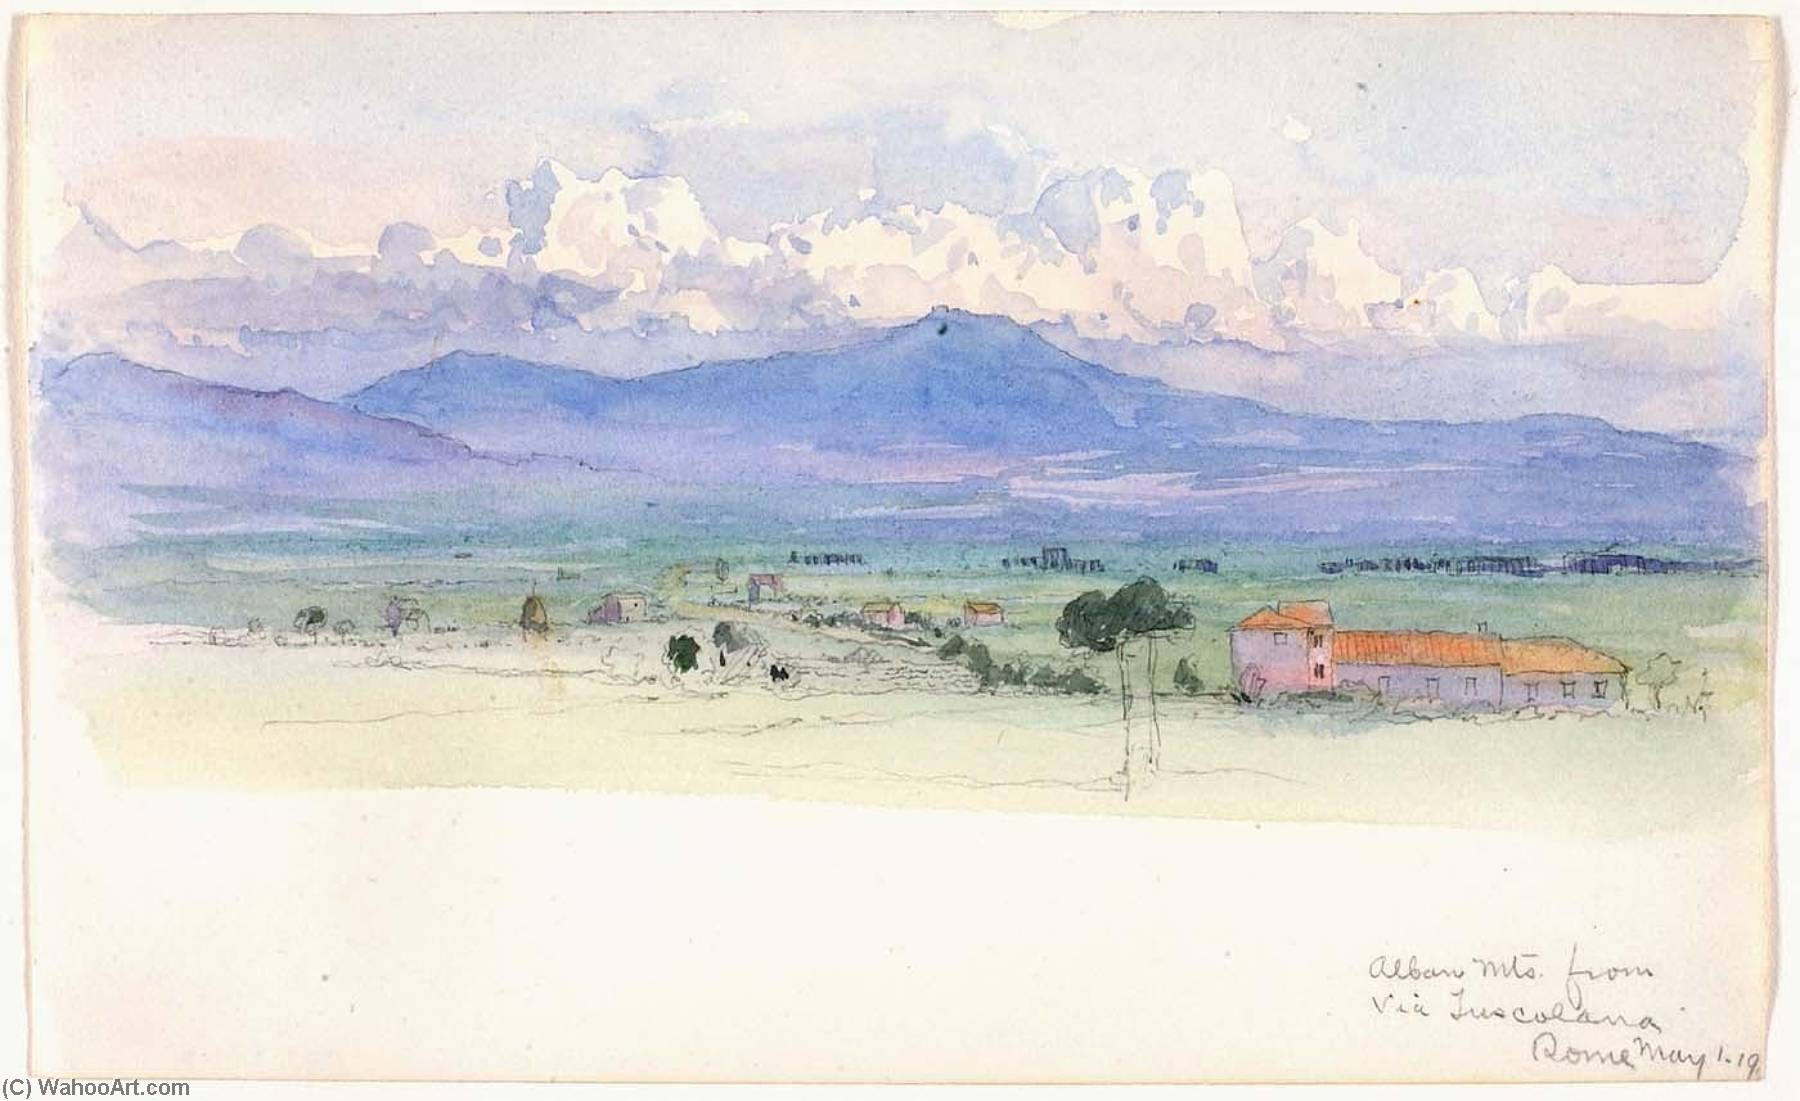 Alban Mountains from Via Tuscolana, Rome, 1900 by George Elbert Burr | Museum Art Reproductions | ArtsDot.com